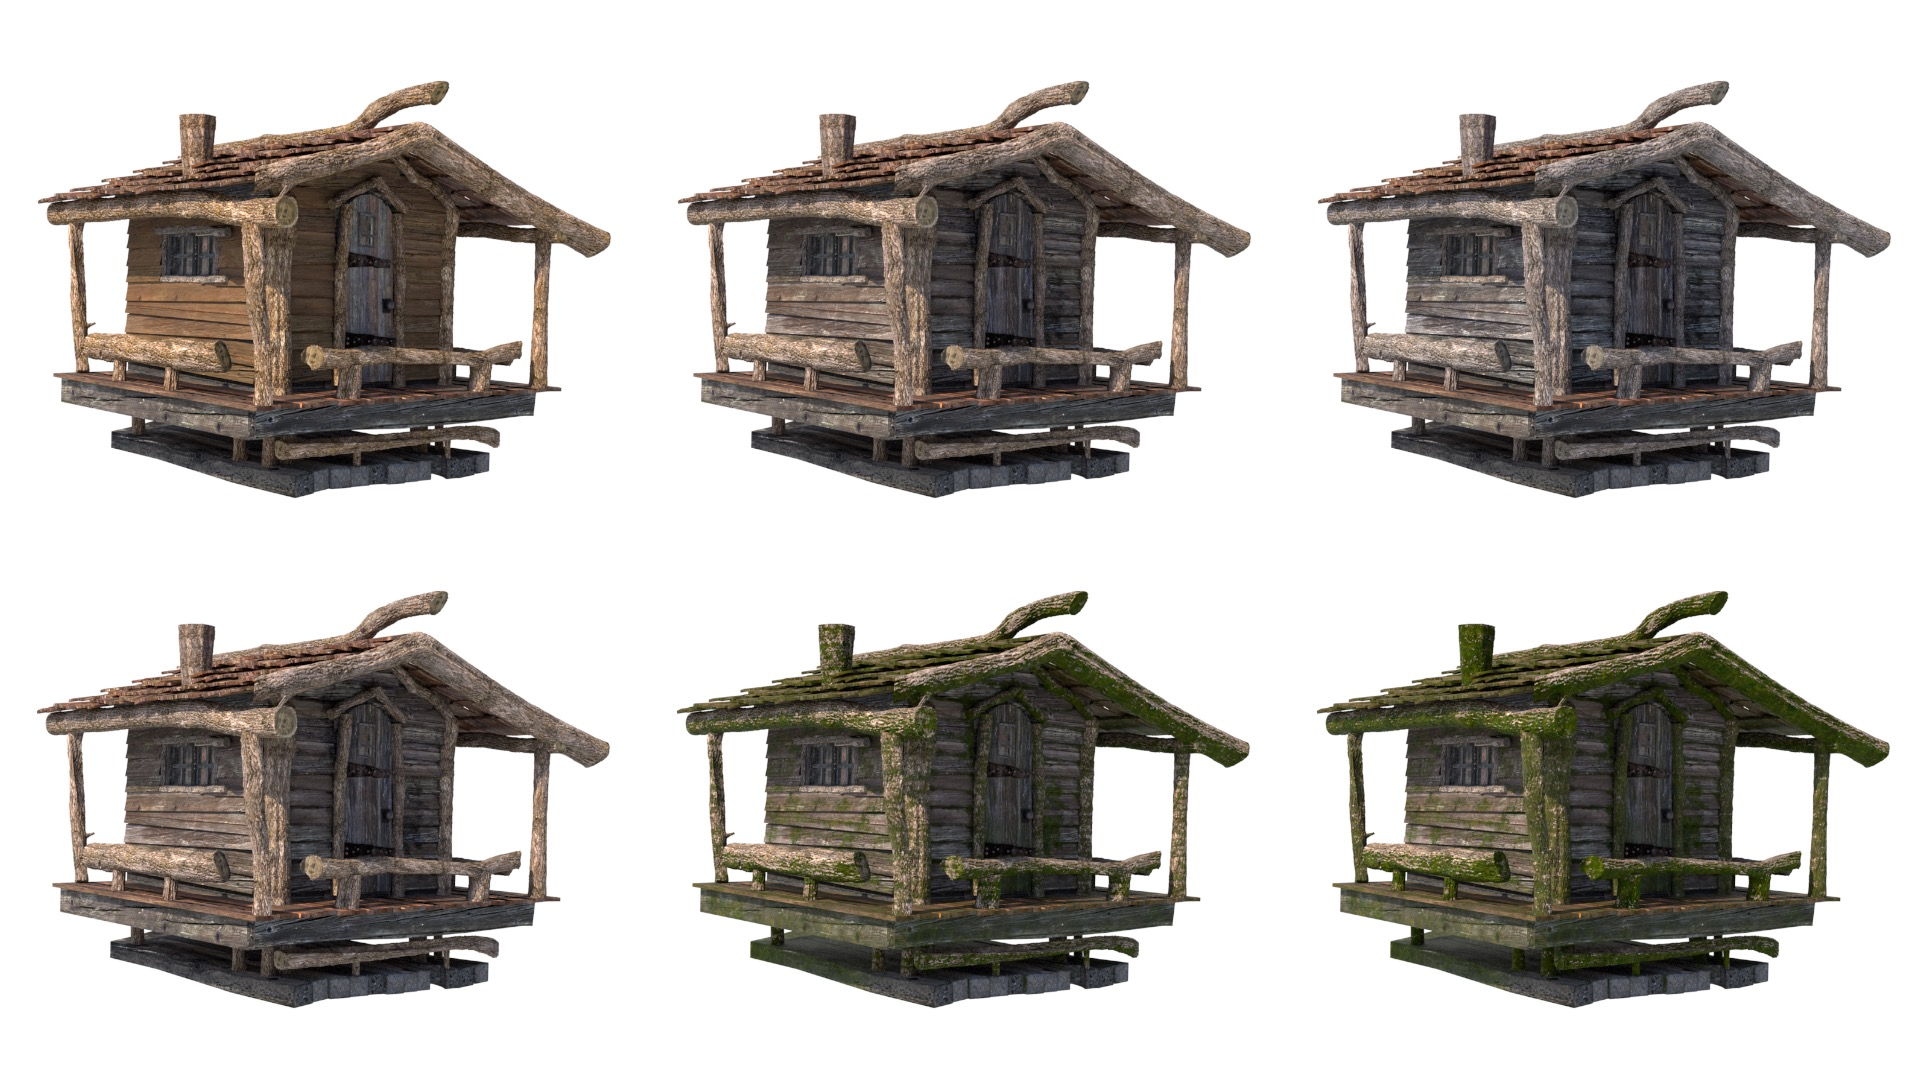 Figure 10: Example of age and moss controllability on one of the cabins. The top row shows, going from left to right, 0% aged, 50% aged, and 100% aged. The bottom row shows, going from left to right, 0% moss, 50% moss, and 100% moss. The final values used were close to 60% for both age and moss.